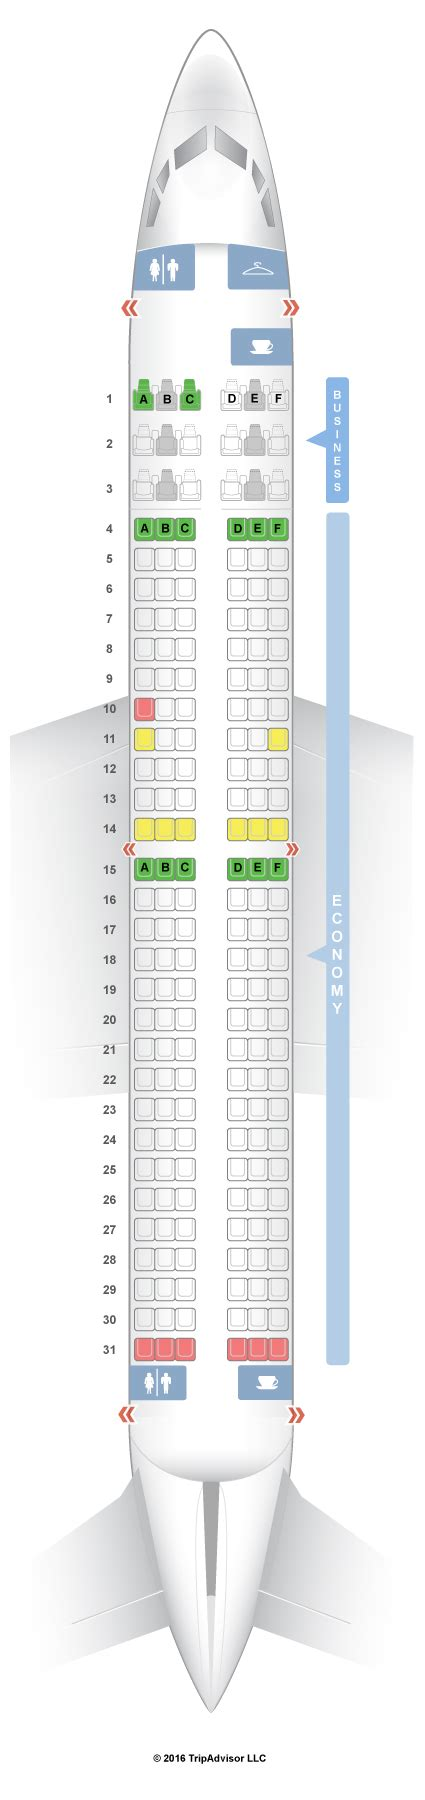 siege premium air seatguru seat map air europa boeing 737 800 738